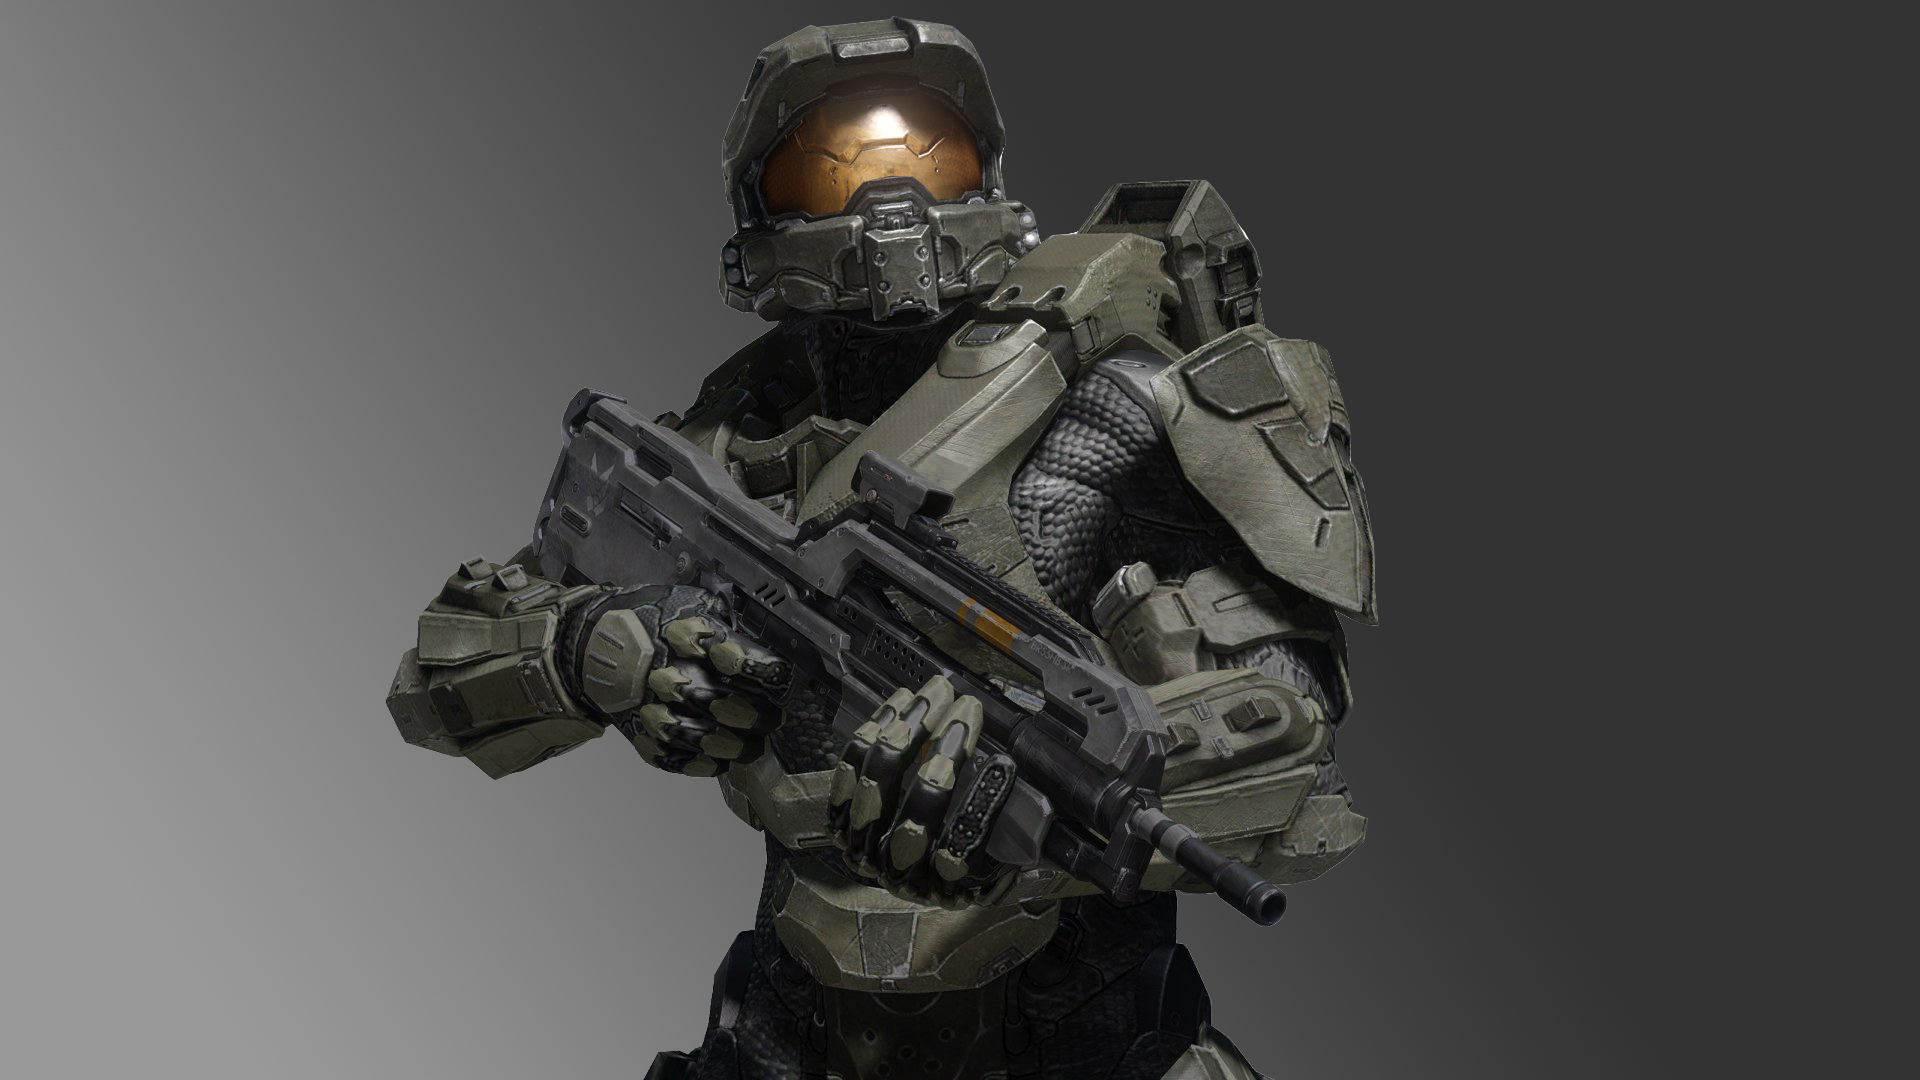 Halo 4 Master Chief HD Wallpaper Background Image 1920x1080 1920x1080